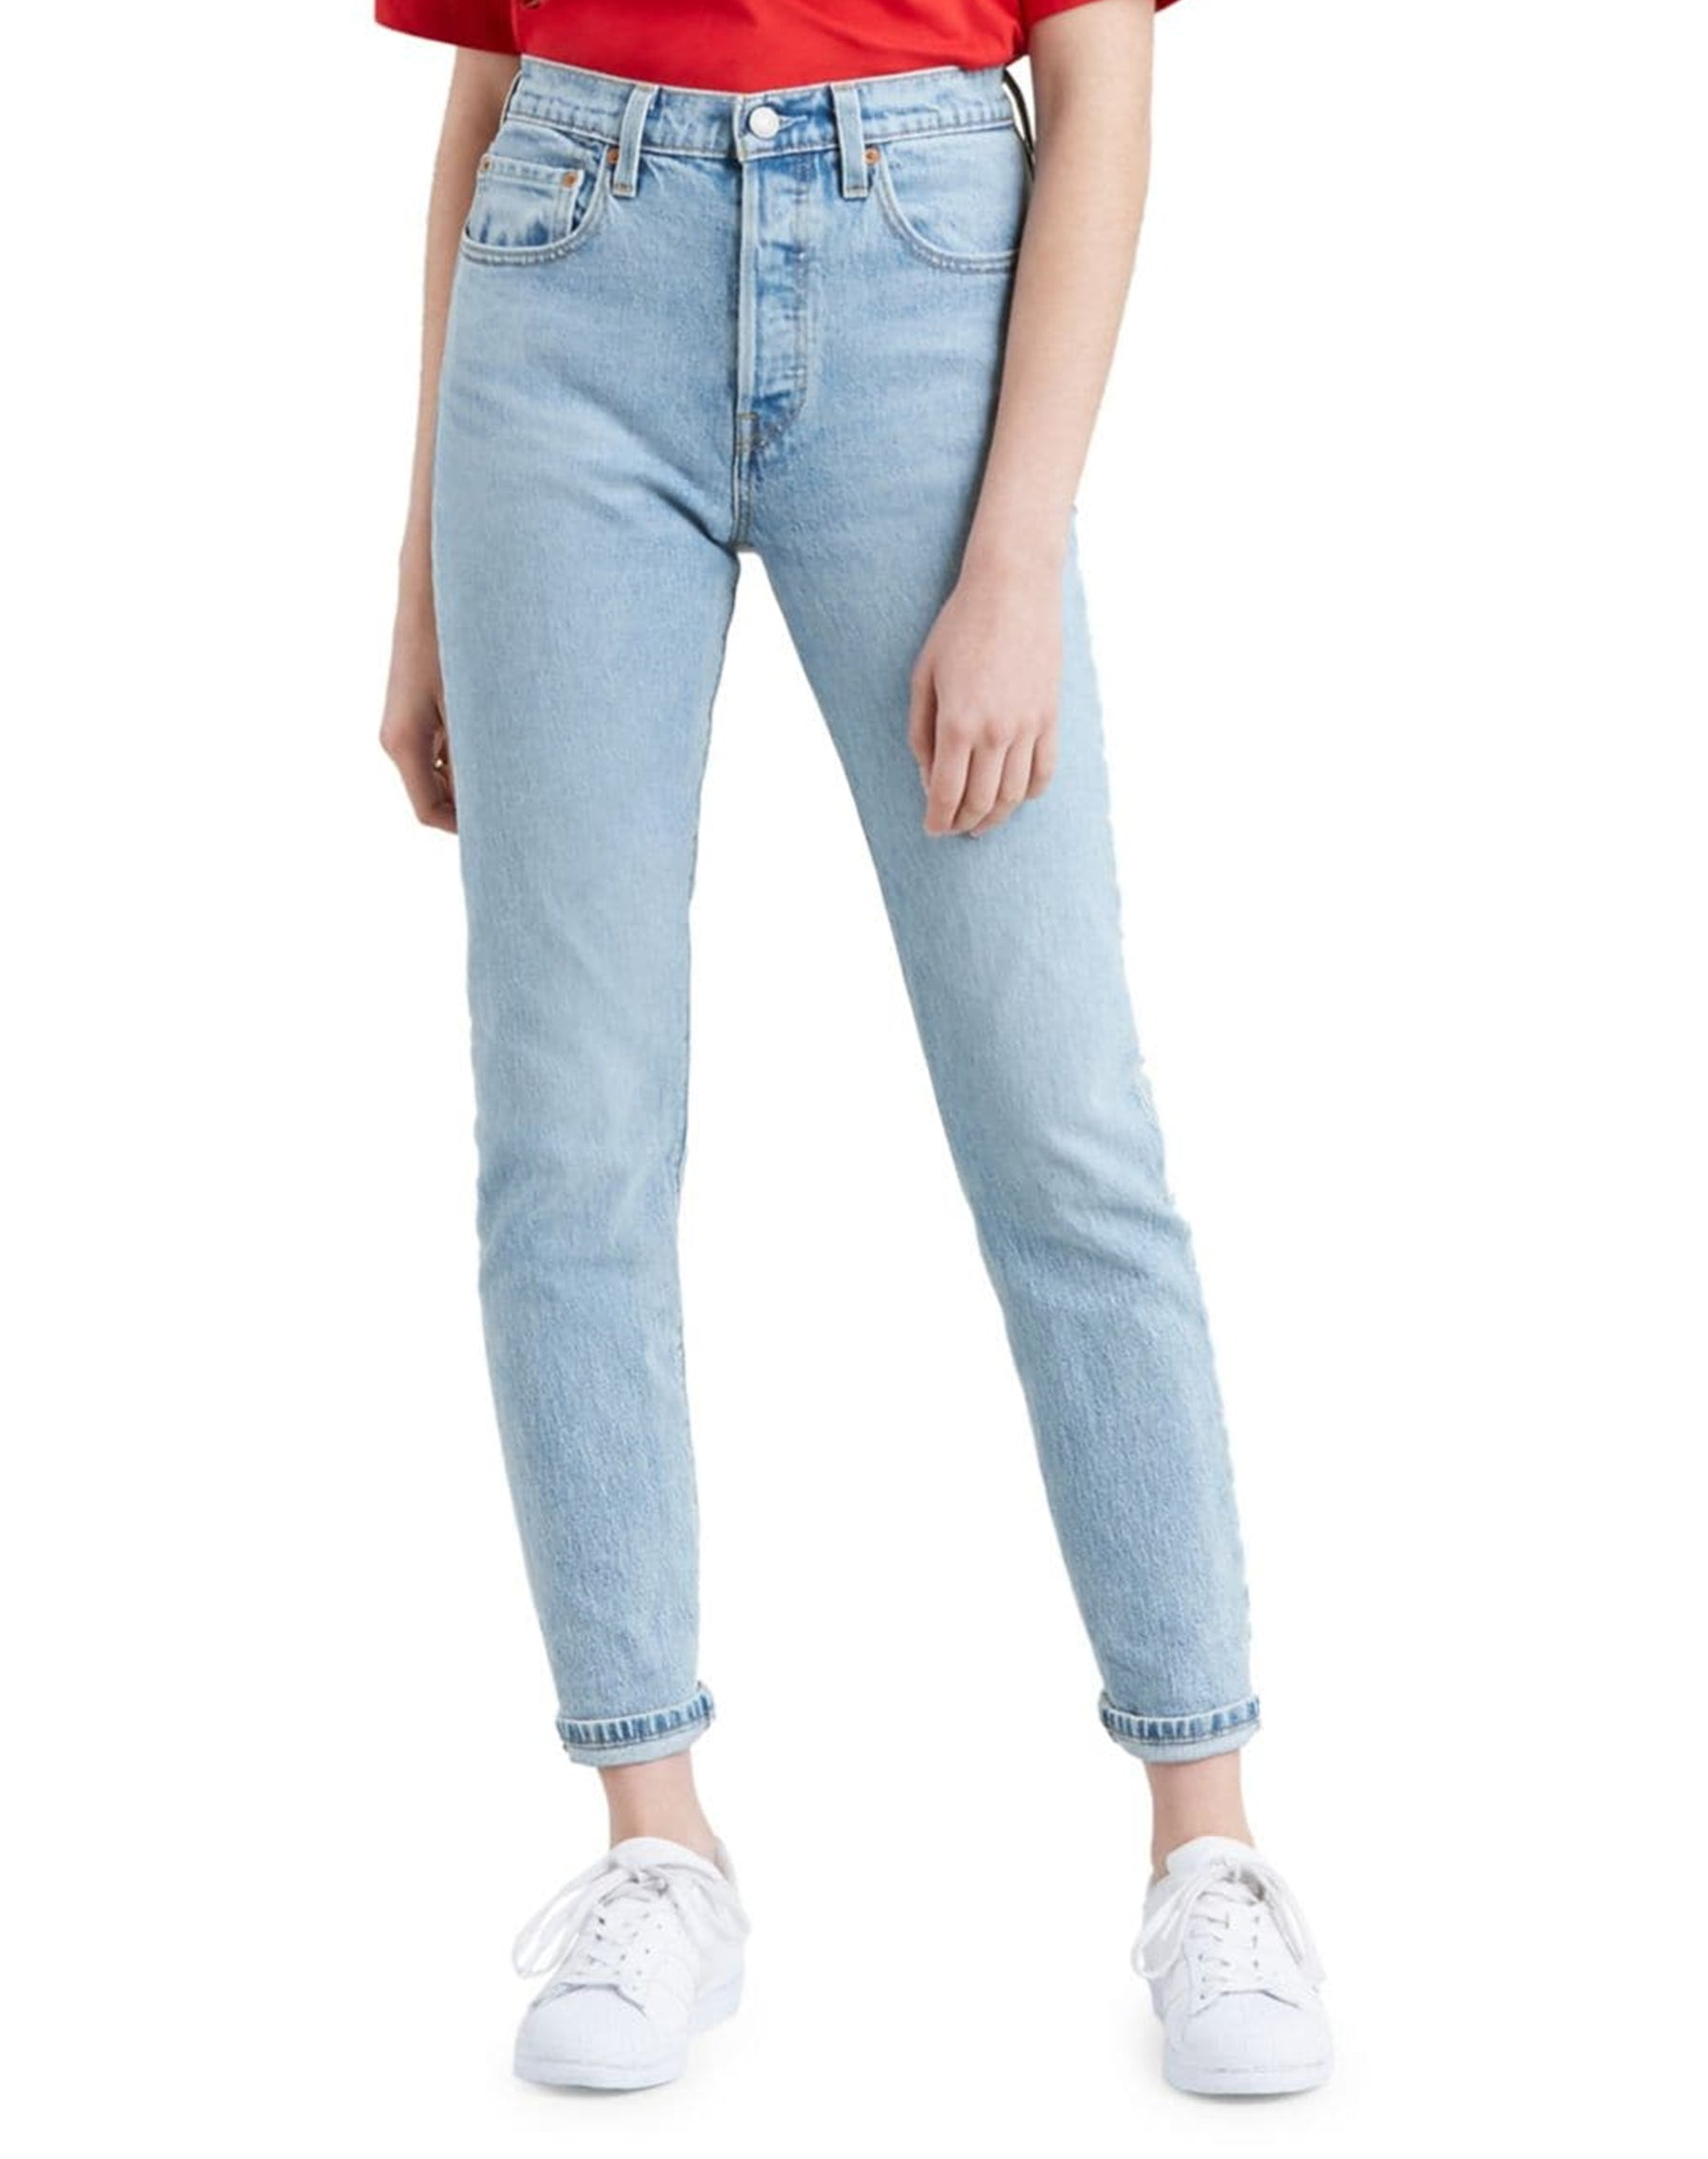 Photo of the Tango Light skinny jeans in light wash by Levi's.